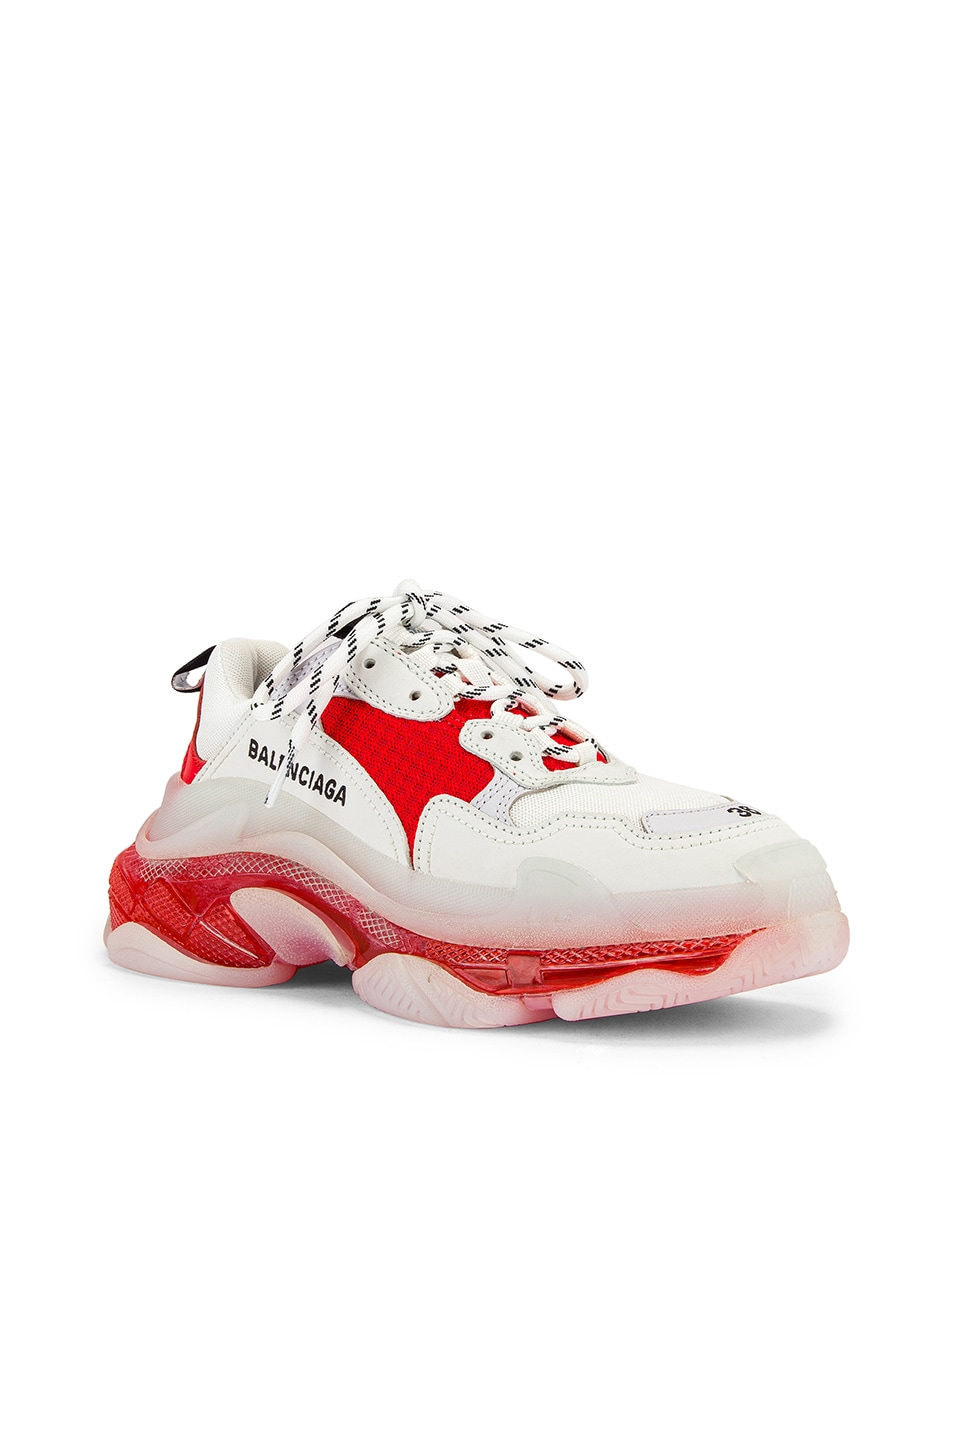 Image 2 of Balenciaga Triple S Sneakers in White & Red